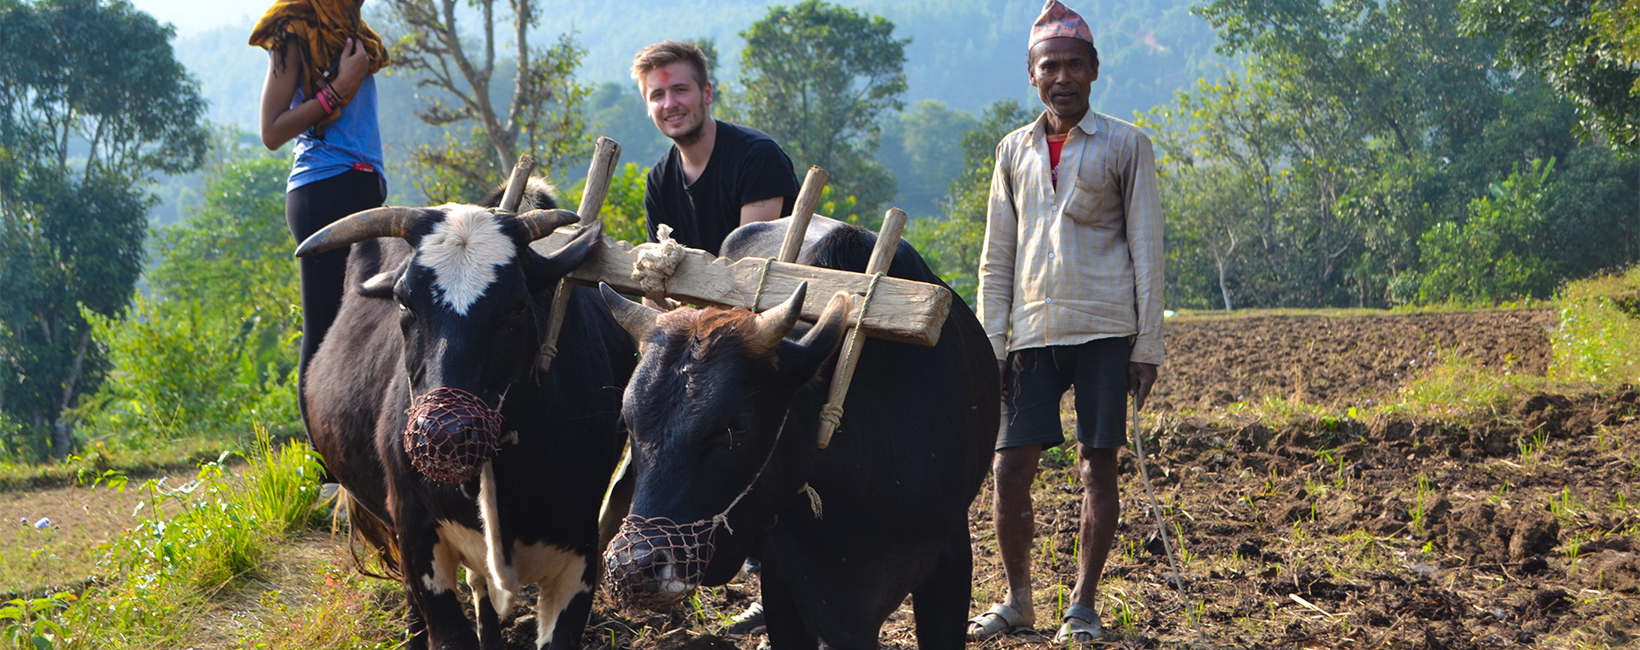 Cultural Immersion Program with Gap Year Nepal